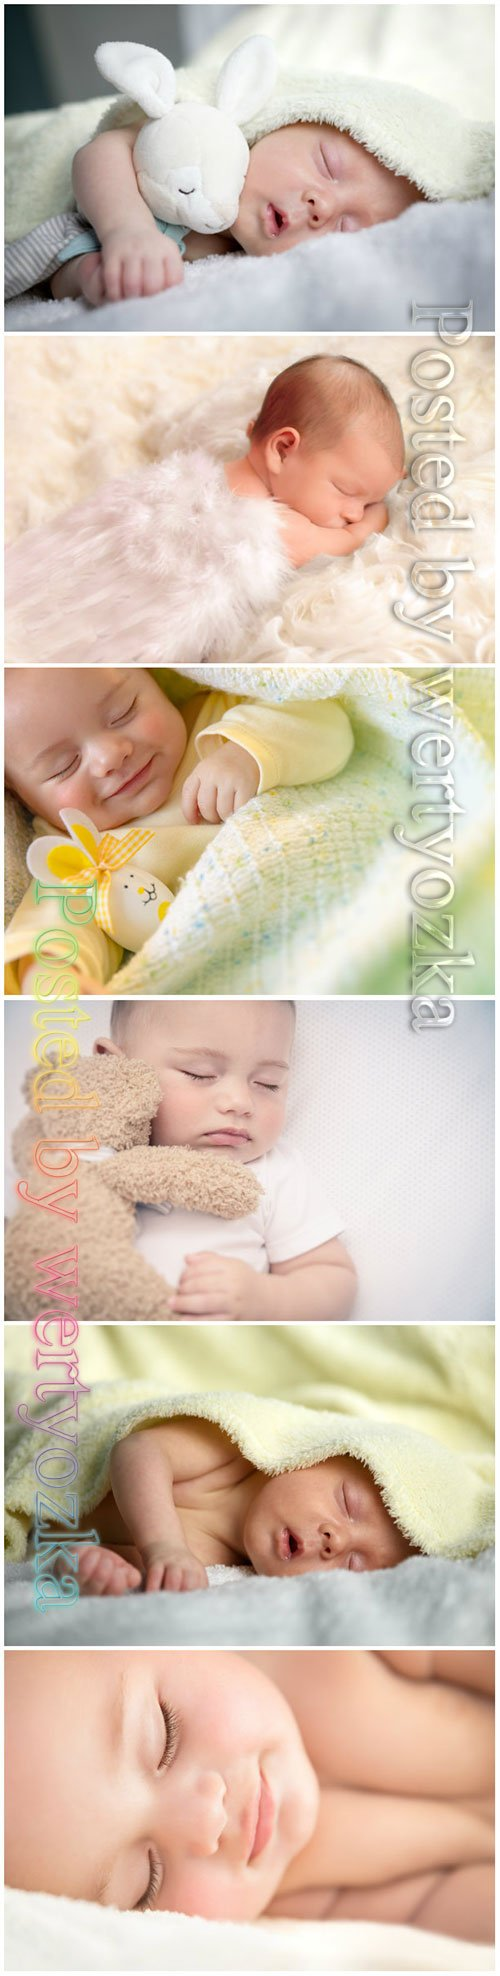 Cute little baby sleeping beautiful stock photo